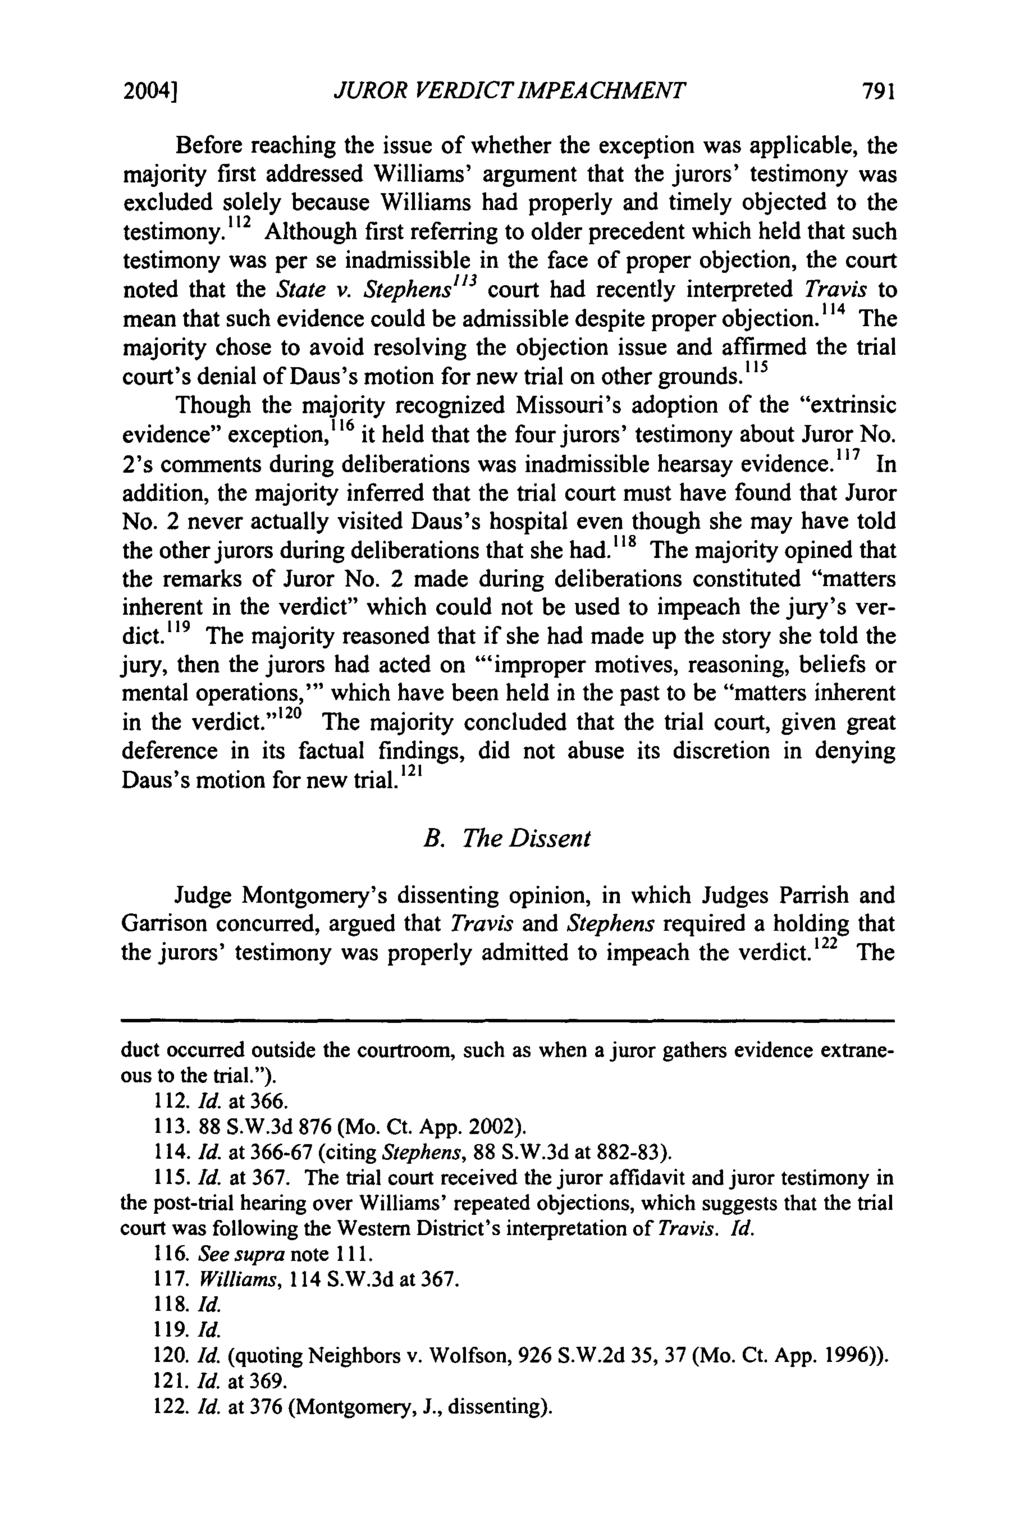 2004] Mudd: Mudd: Liberalizing the Mansfield Rule in Missouri: JUROR VERDICT IMPEACHMENT Before reaching the issue of whether the exception was applicable, the majority first addressed Williams'